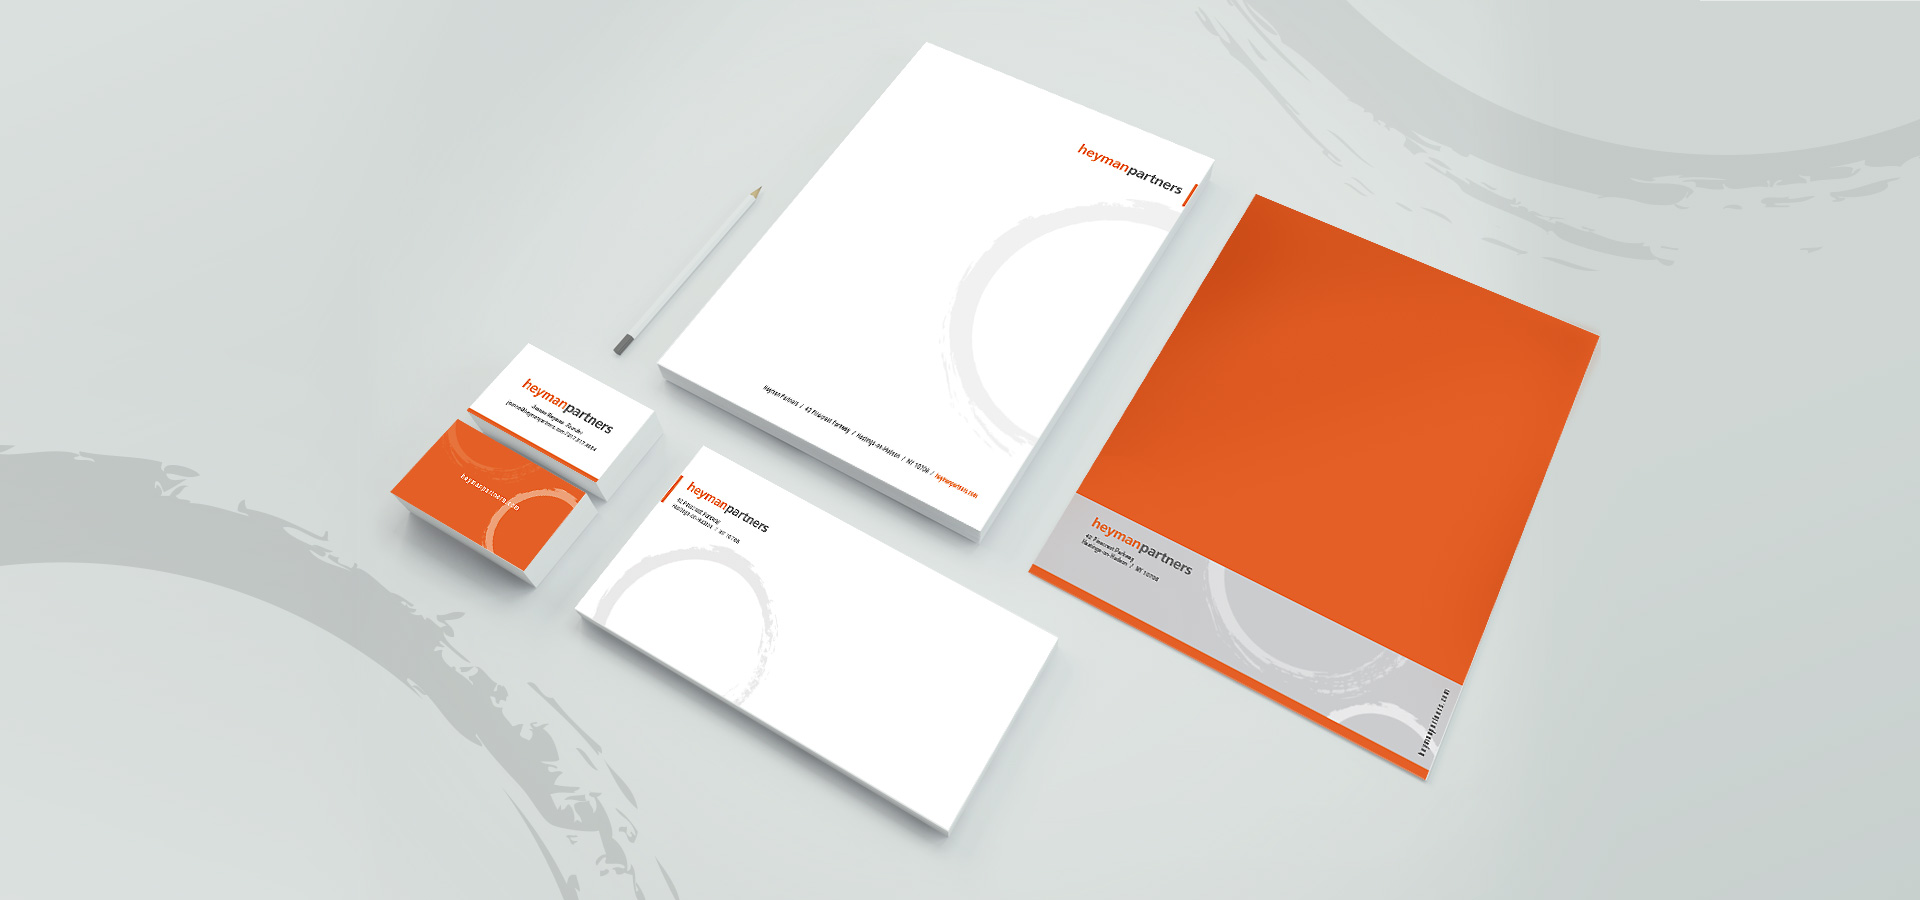 orange and gray tone stationery design including business card, letterhead, envelope and business folder for heyman partners